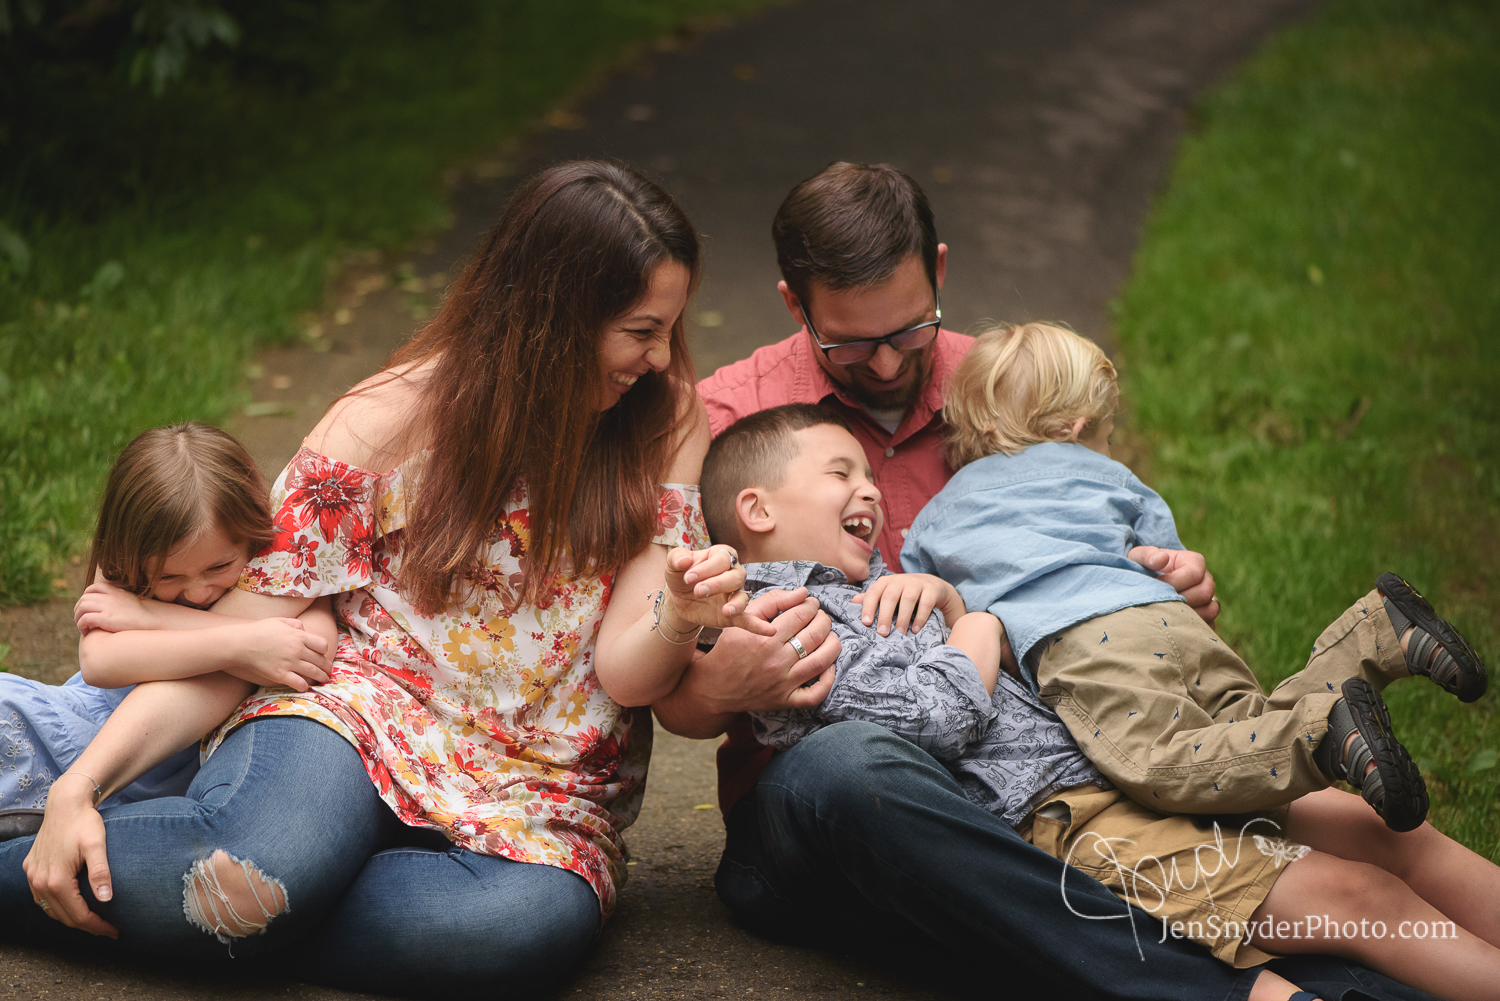 Professional Family Photographer in Bel Air, MD Jen Snyder http://www.jensnyderphoto.com